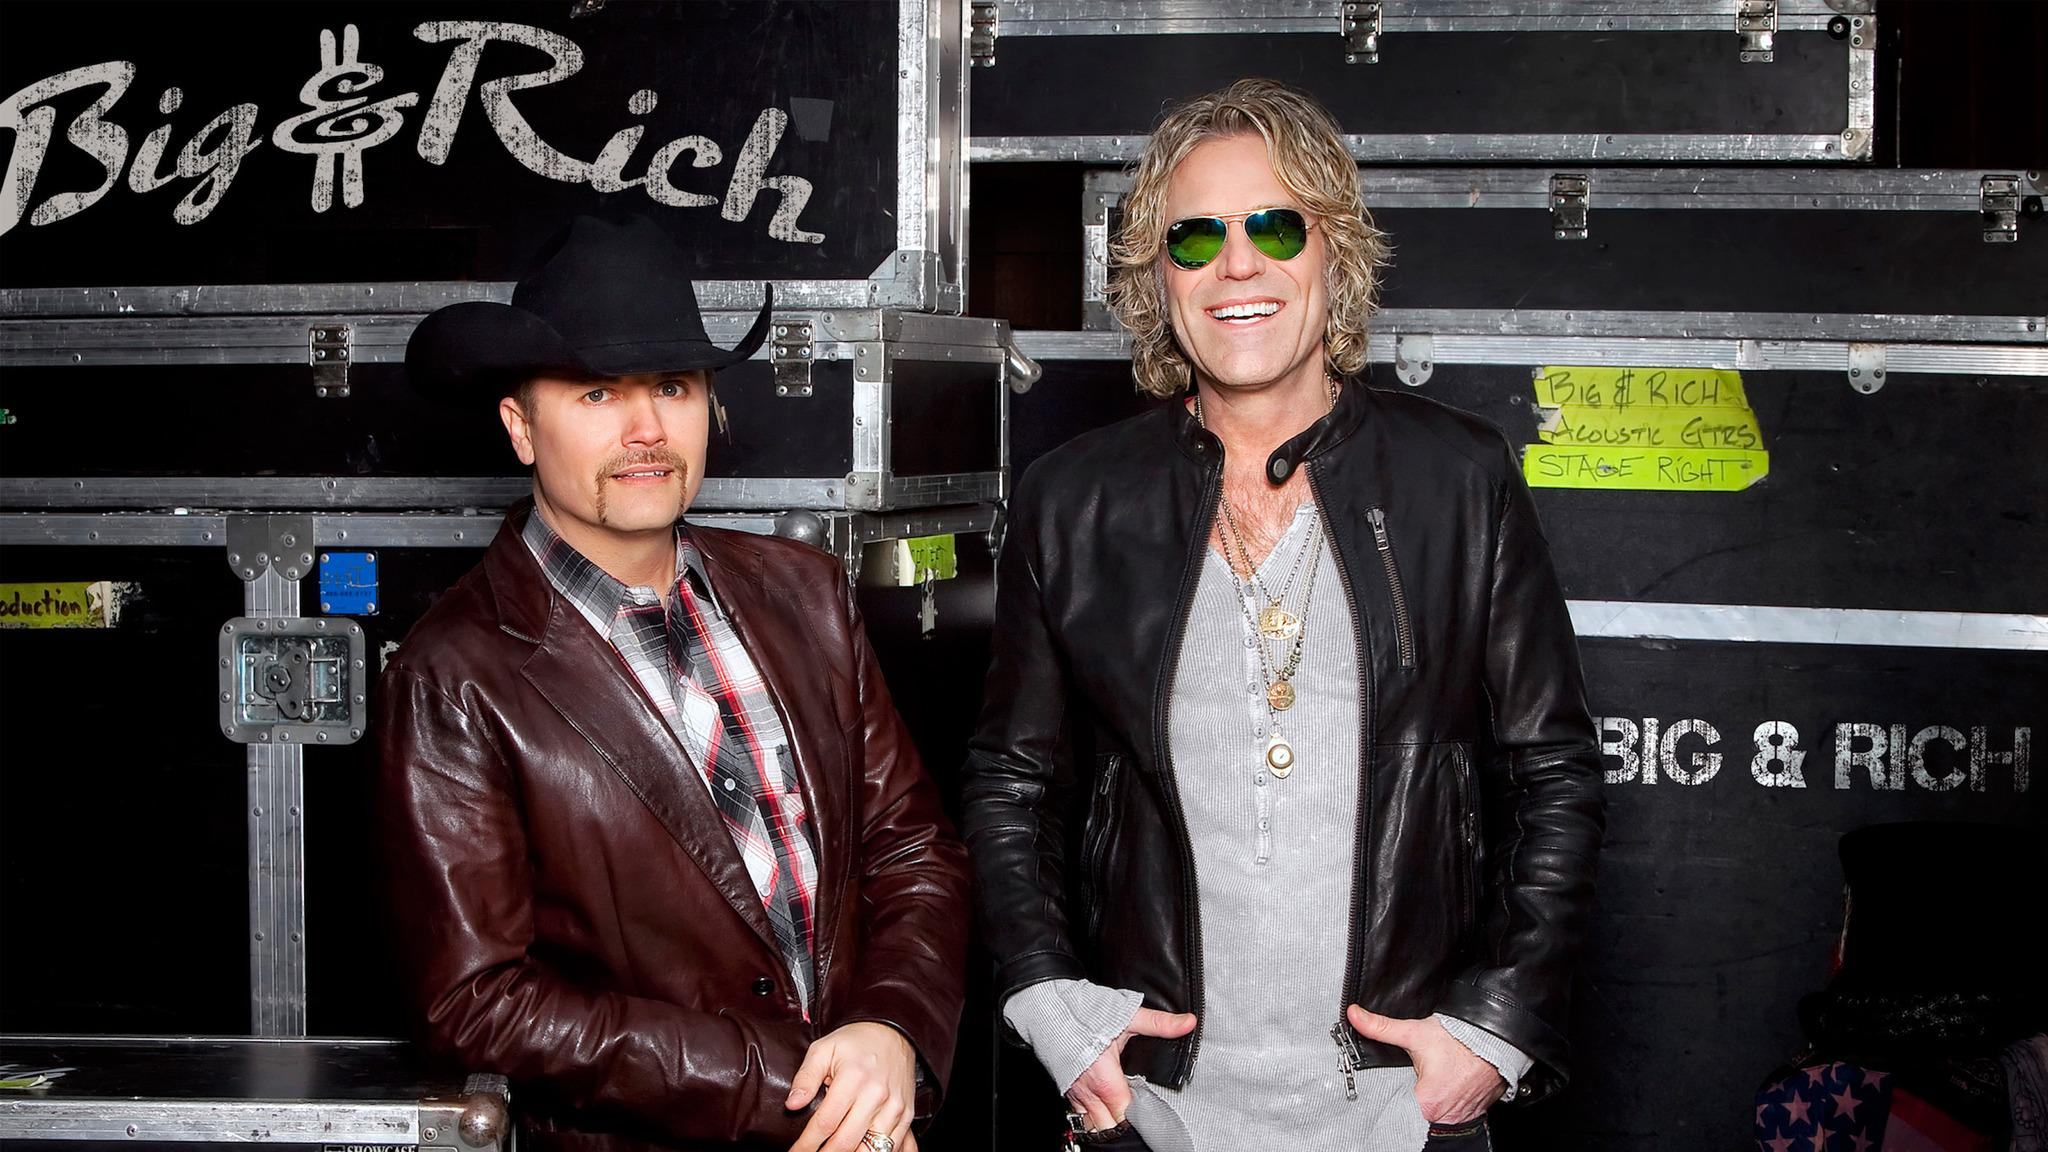 Big & Rich with Gone West ft. Colbie Caillat and Rachel Steele